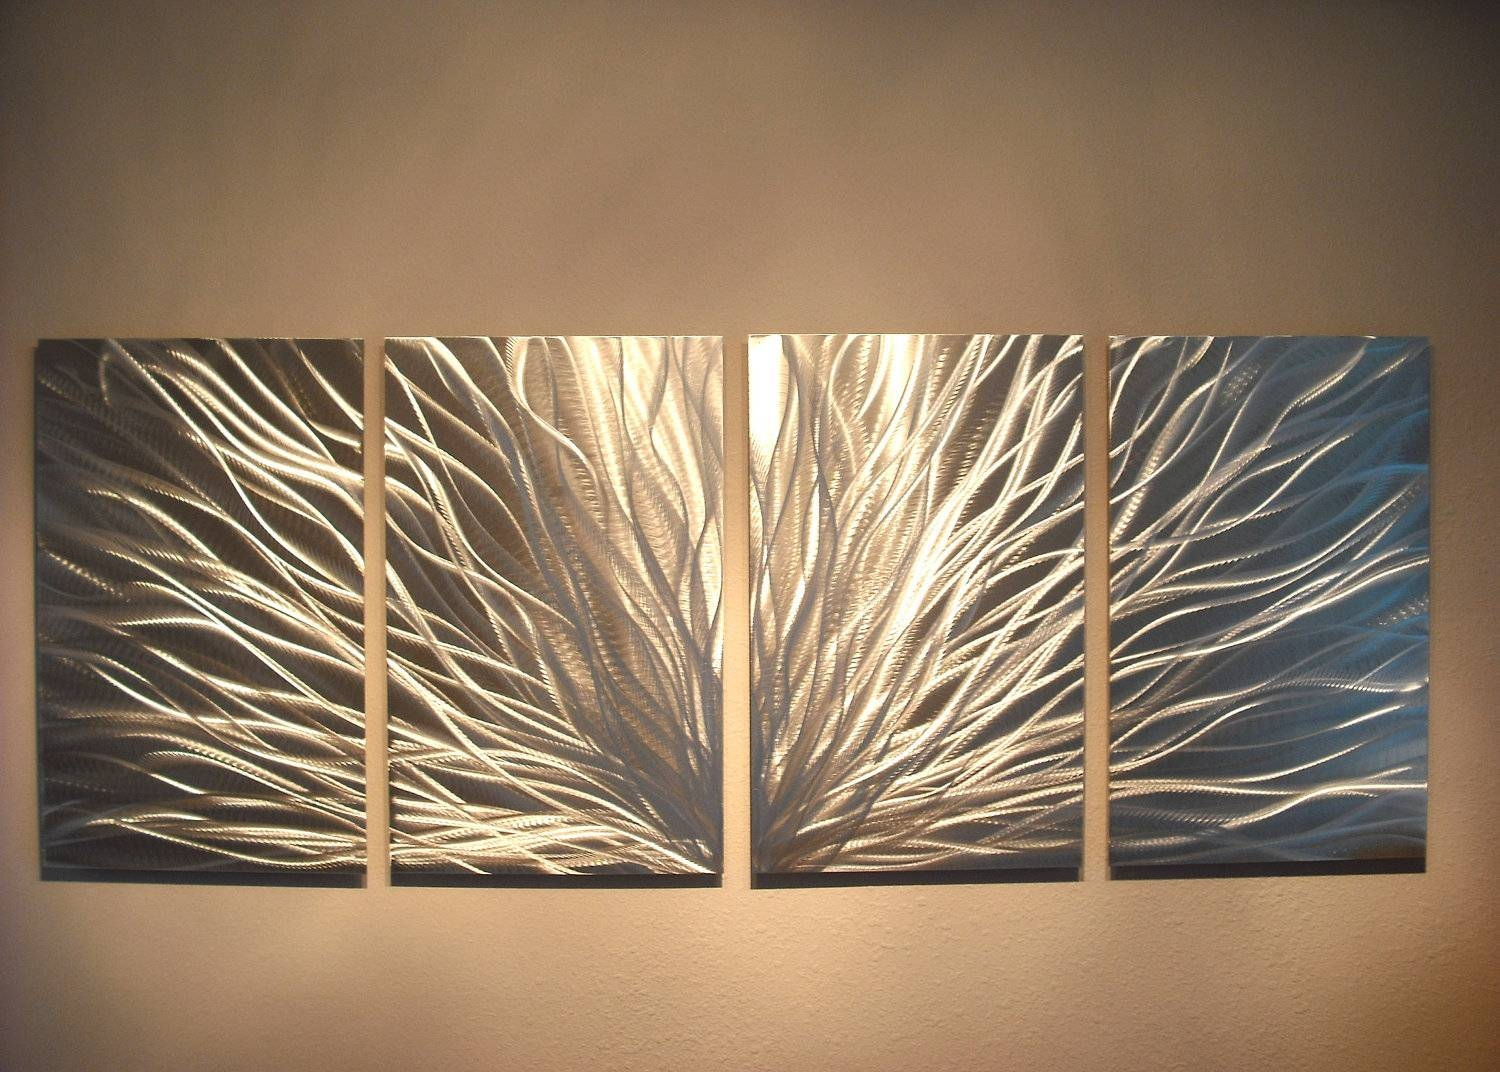 Radiance – Abstract Metal Wall Art Contemporary Modern Decor Within Most Recent Indoor Metal Wall Art (View 10 of 20)